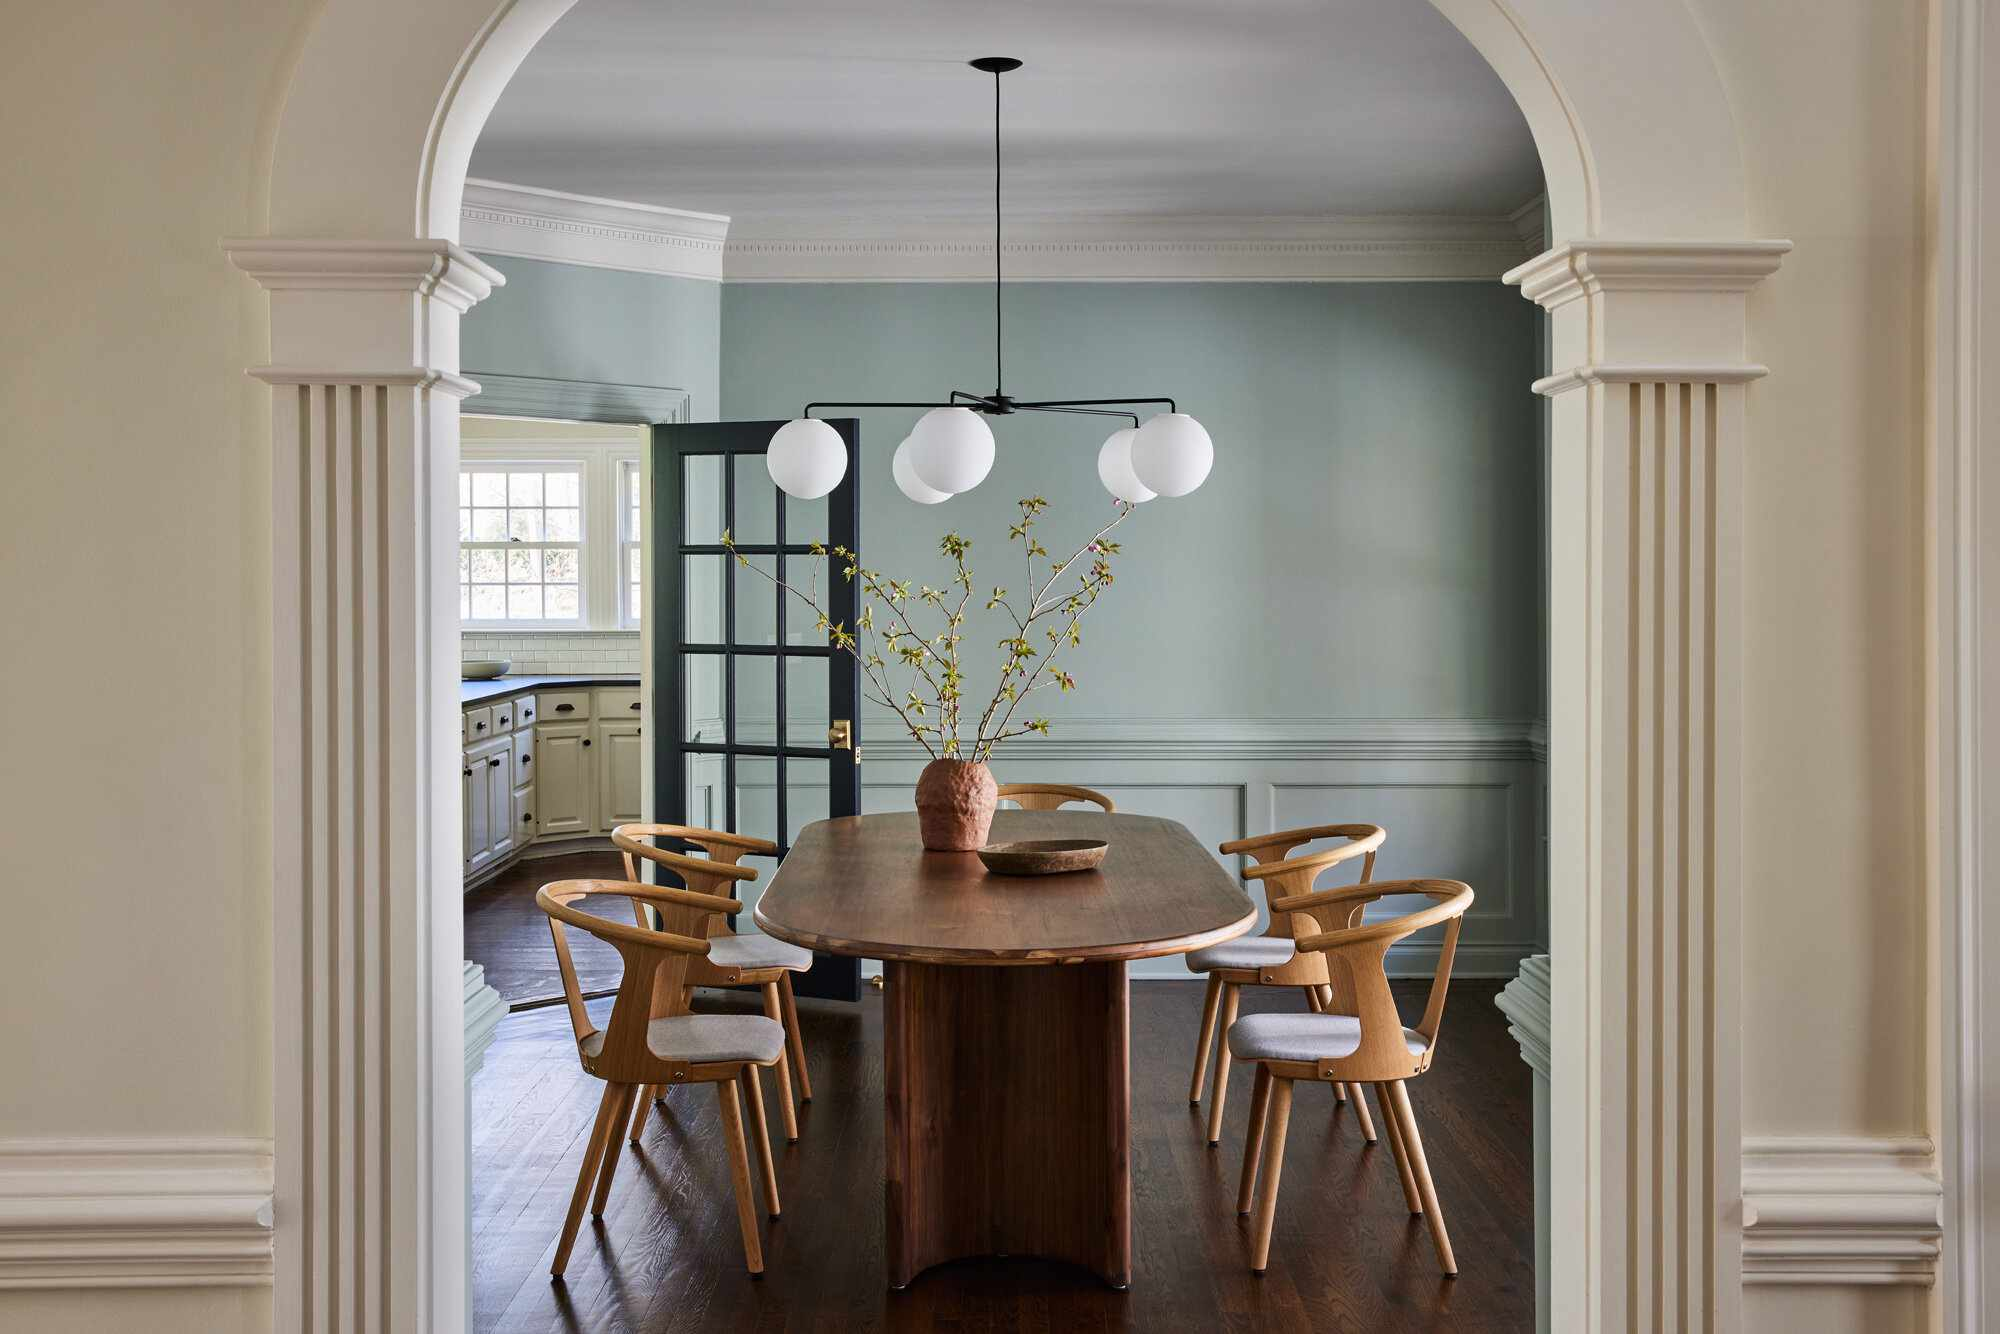 A dining room with sleek wooden furniture and light blue walls